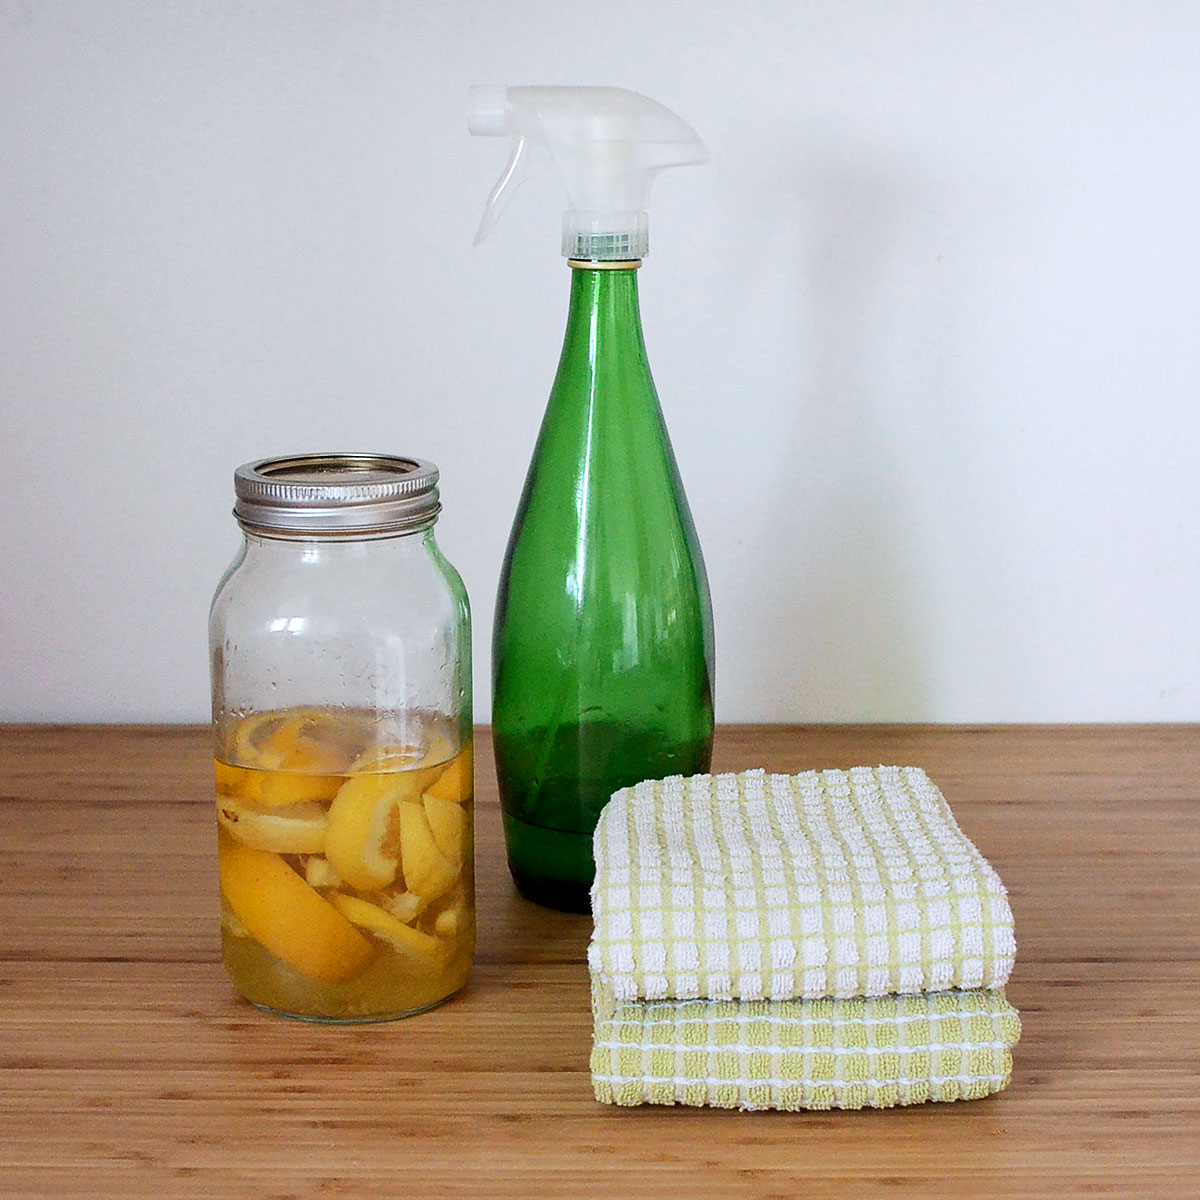 tiny trash can diy all-purpose cleaner recipe